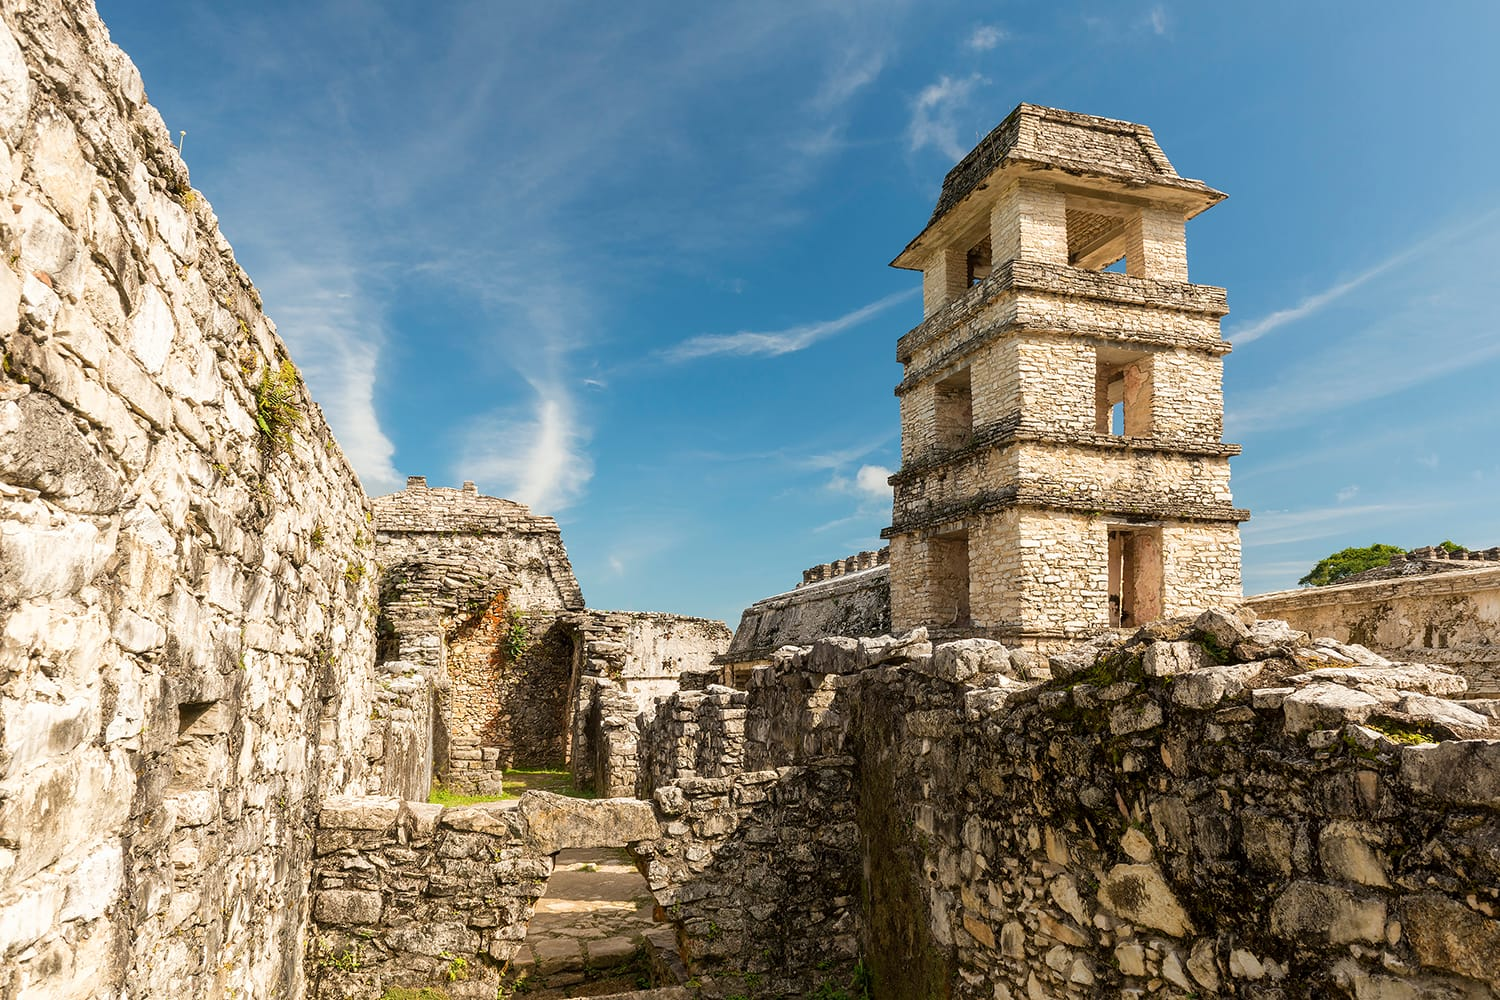 The Palace, one of the Mayan buiding ruins in Palenque, Mexico